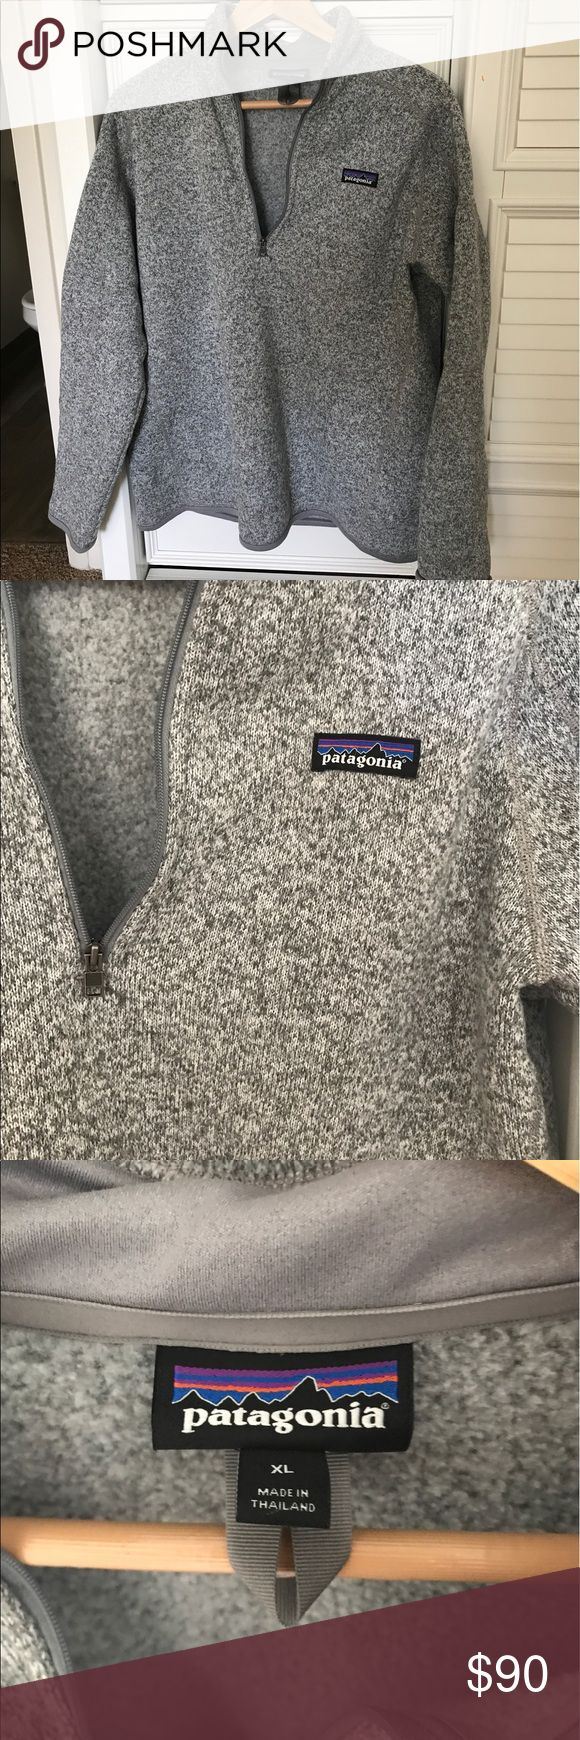 Patagonia better sweater Gently used-worn twice women's better sweater. I got this in an XL for a roomier fit. Great sweater definitely keeps you warm. I'm downsizing my closet. Bought this 6 months ago and I just don't wear it like it deserves! Patagonia Sweaters